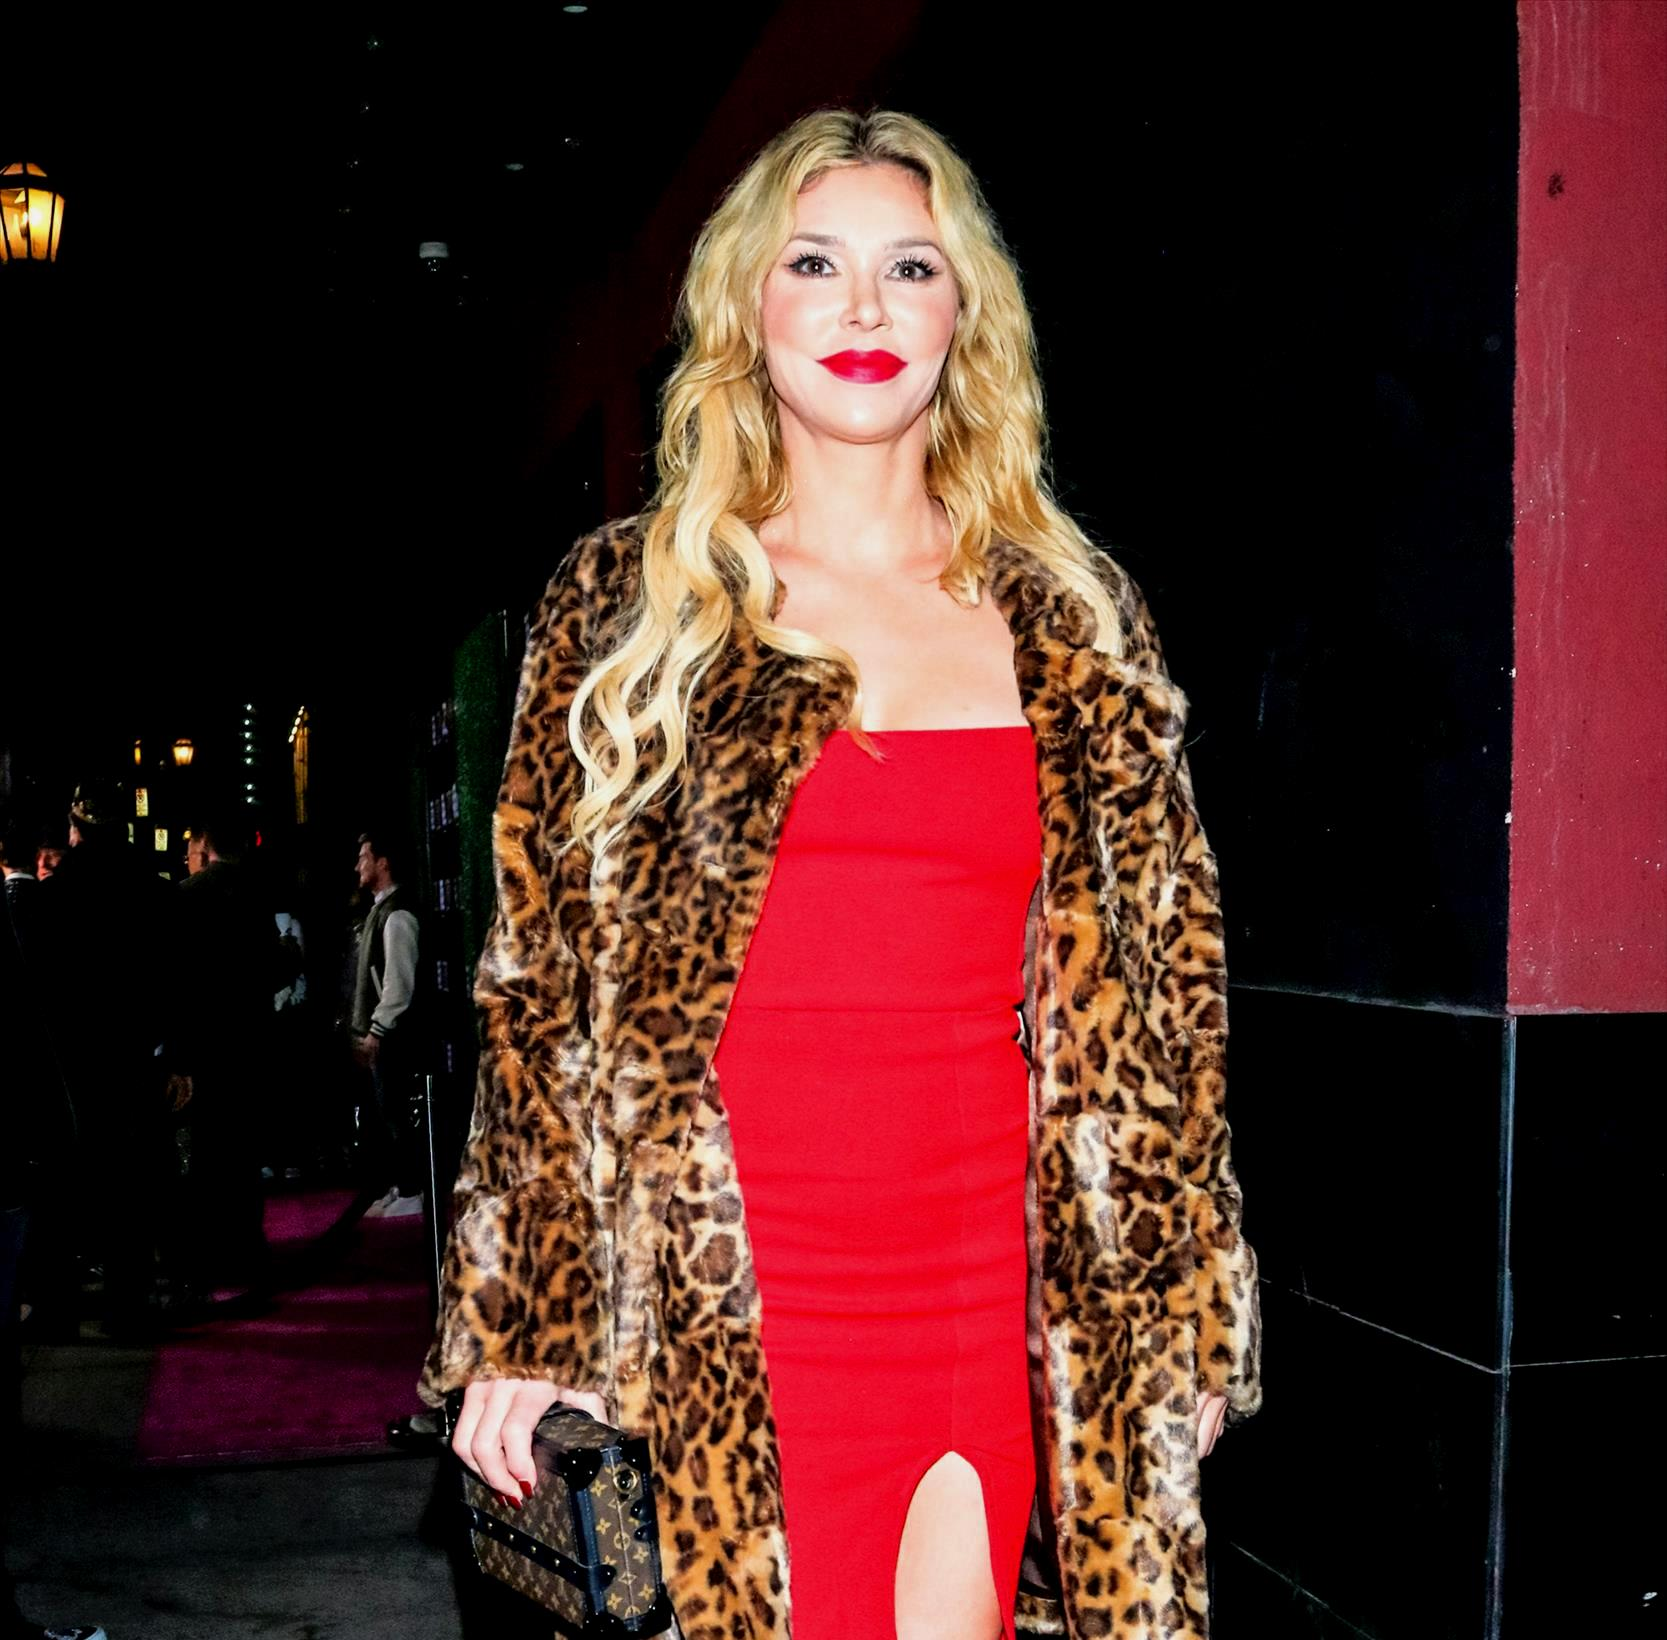 Did Brandi Glanville Hint at a Full-Time Return to the RHOBH on Twitter? See the Alleged Tweet as She Films One-on-One Reunion Interview With Andy Cohen